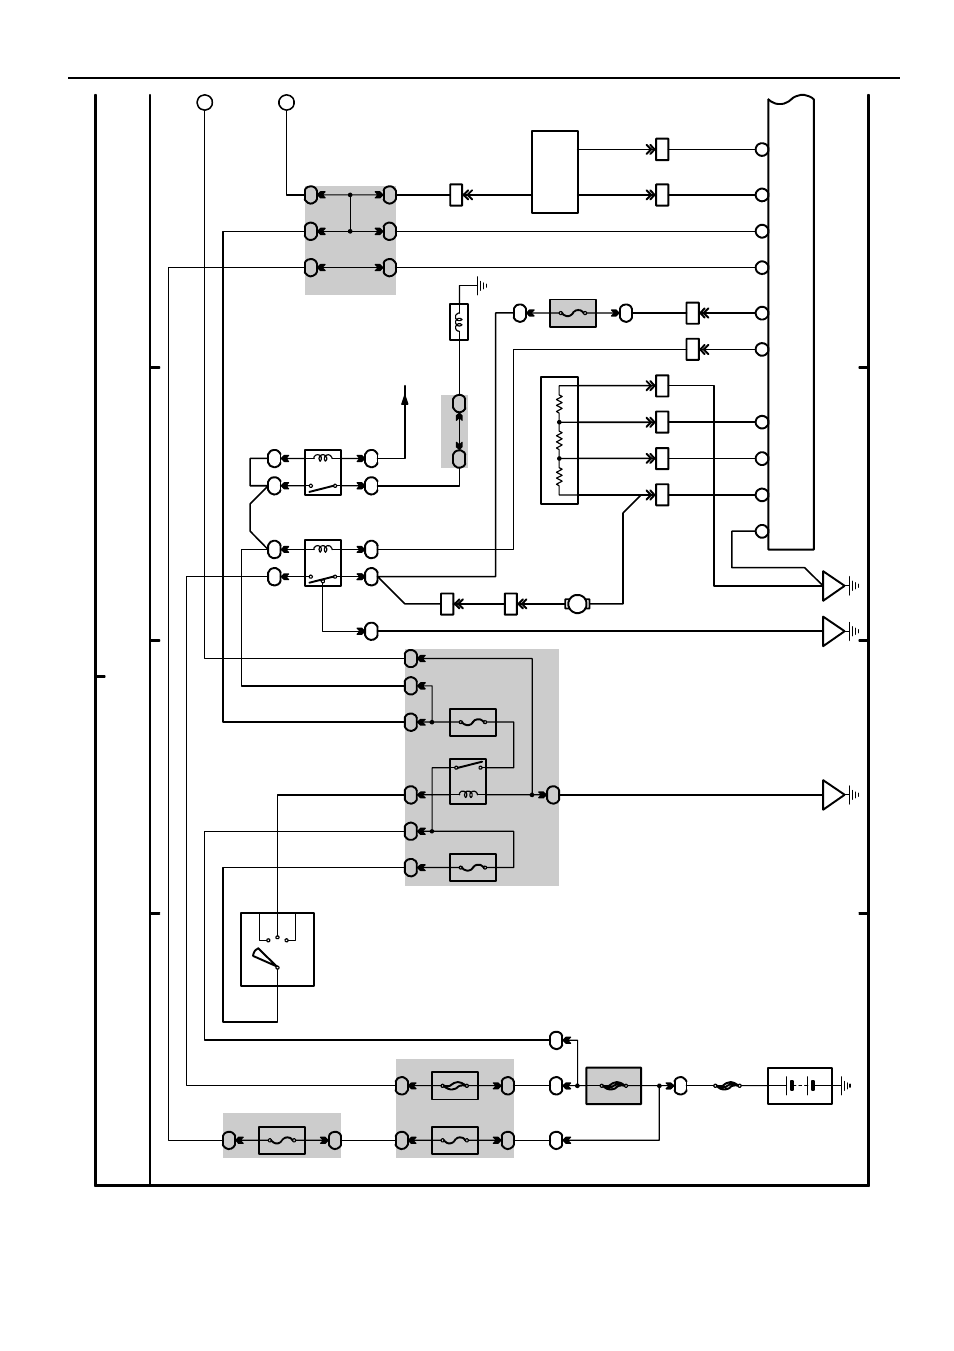 Camry Fuse Diagram On Power Window Wiring Diagram Additionally Toyota